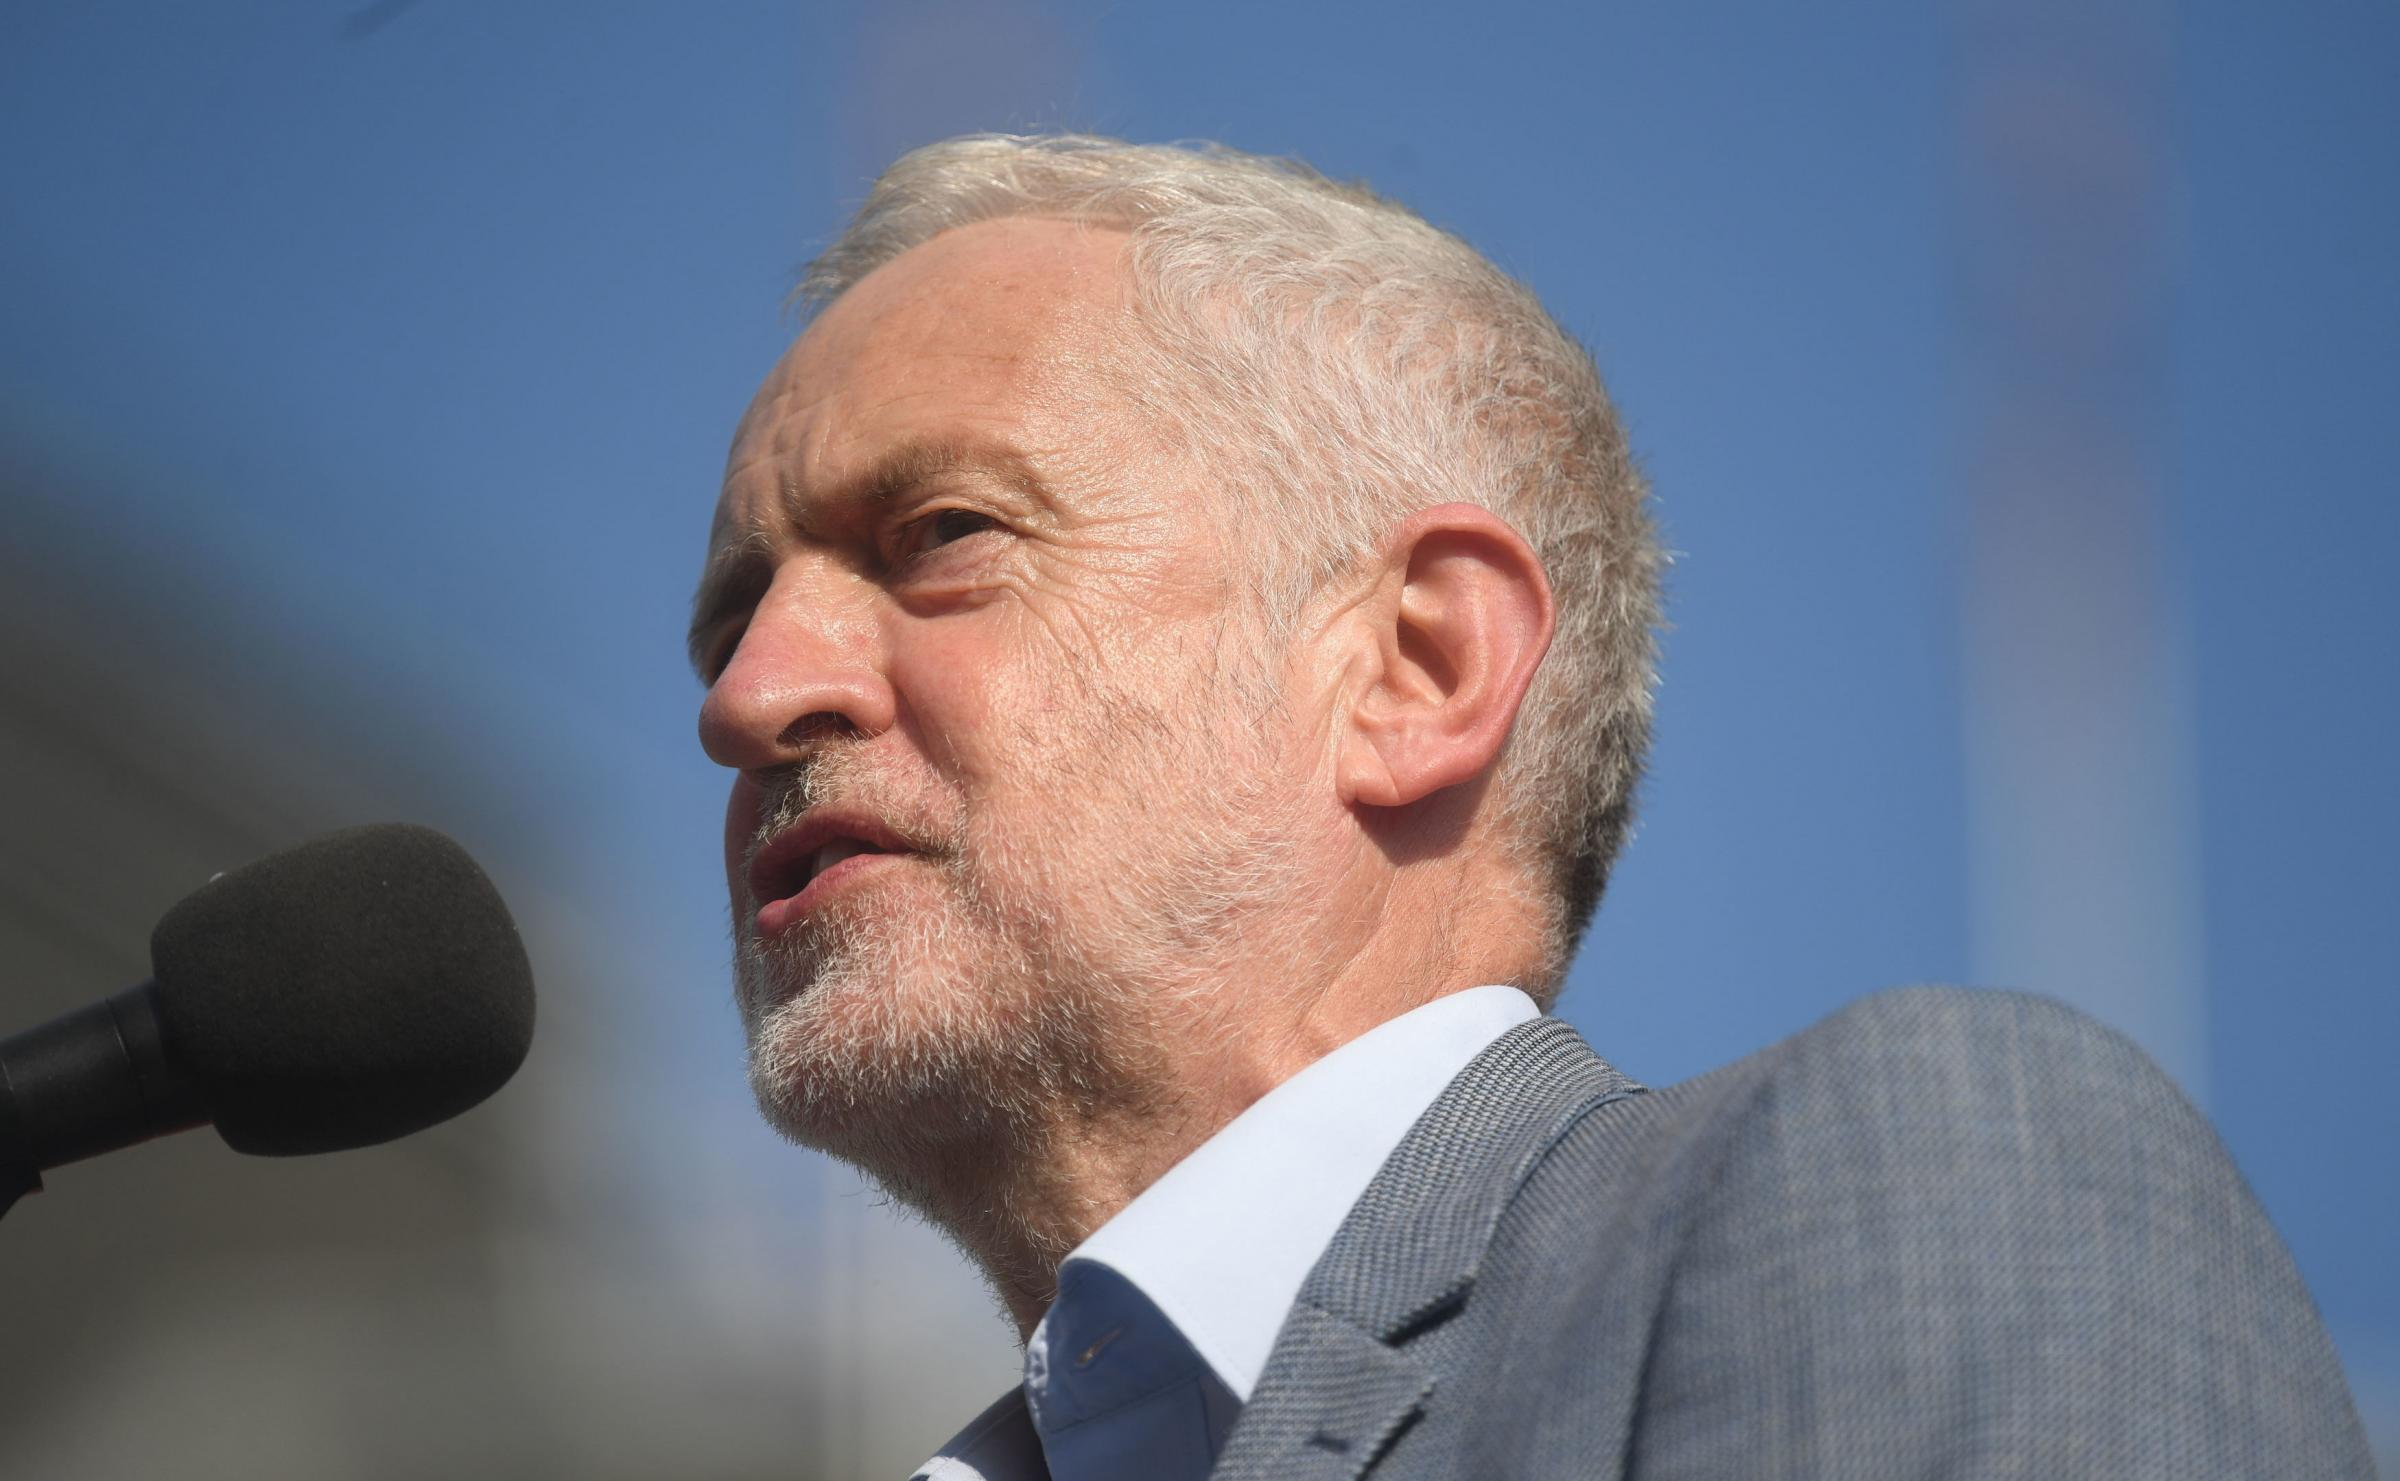 Jewish Leaders Condemn Corbyn's 'Meaningless' Response to Labour Party's 'Institutional' Anti-Semitism